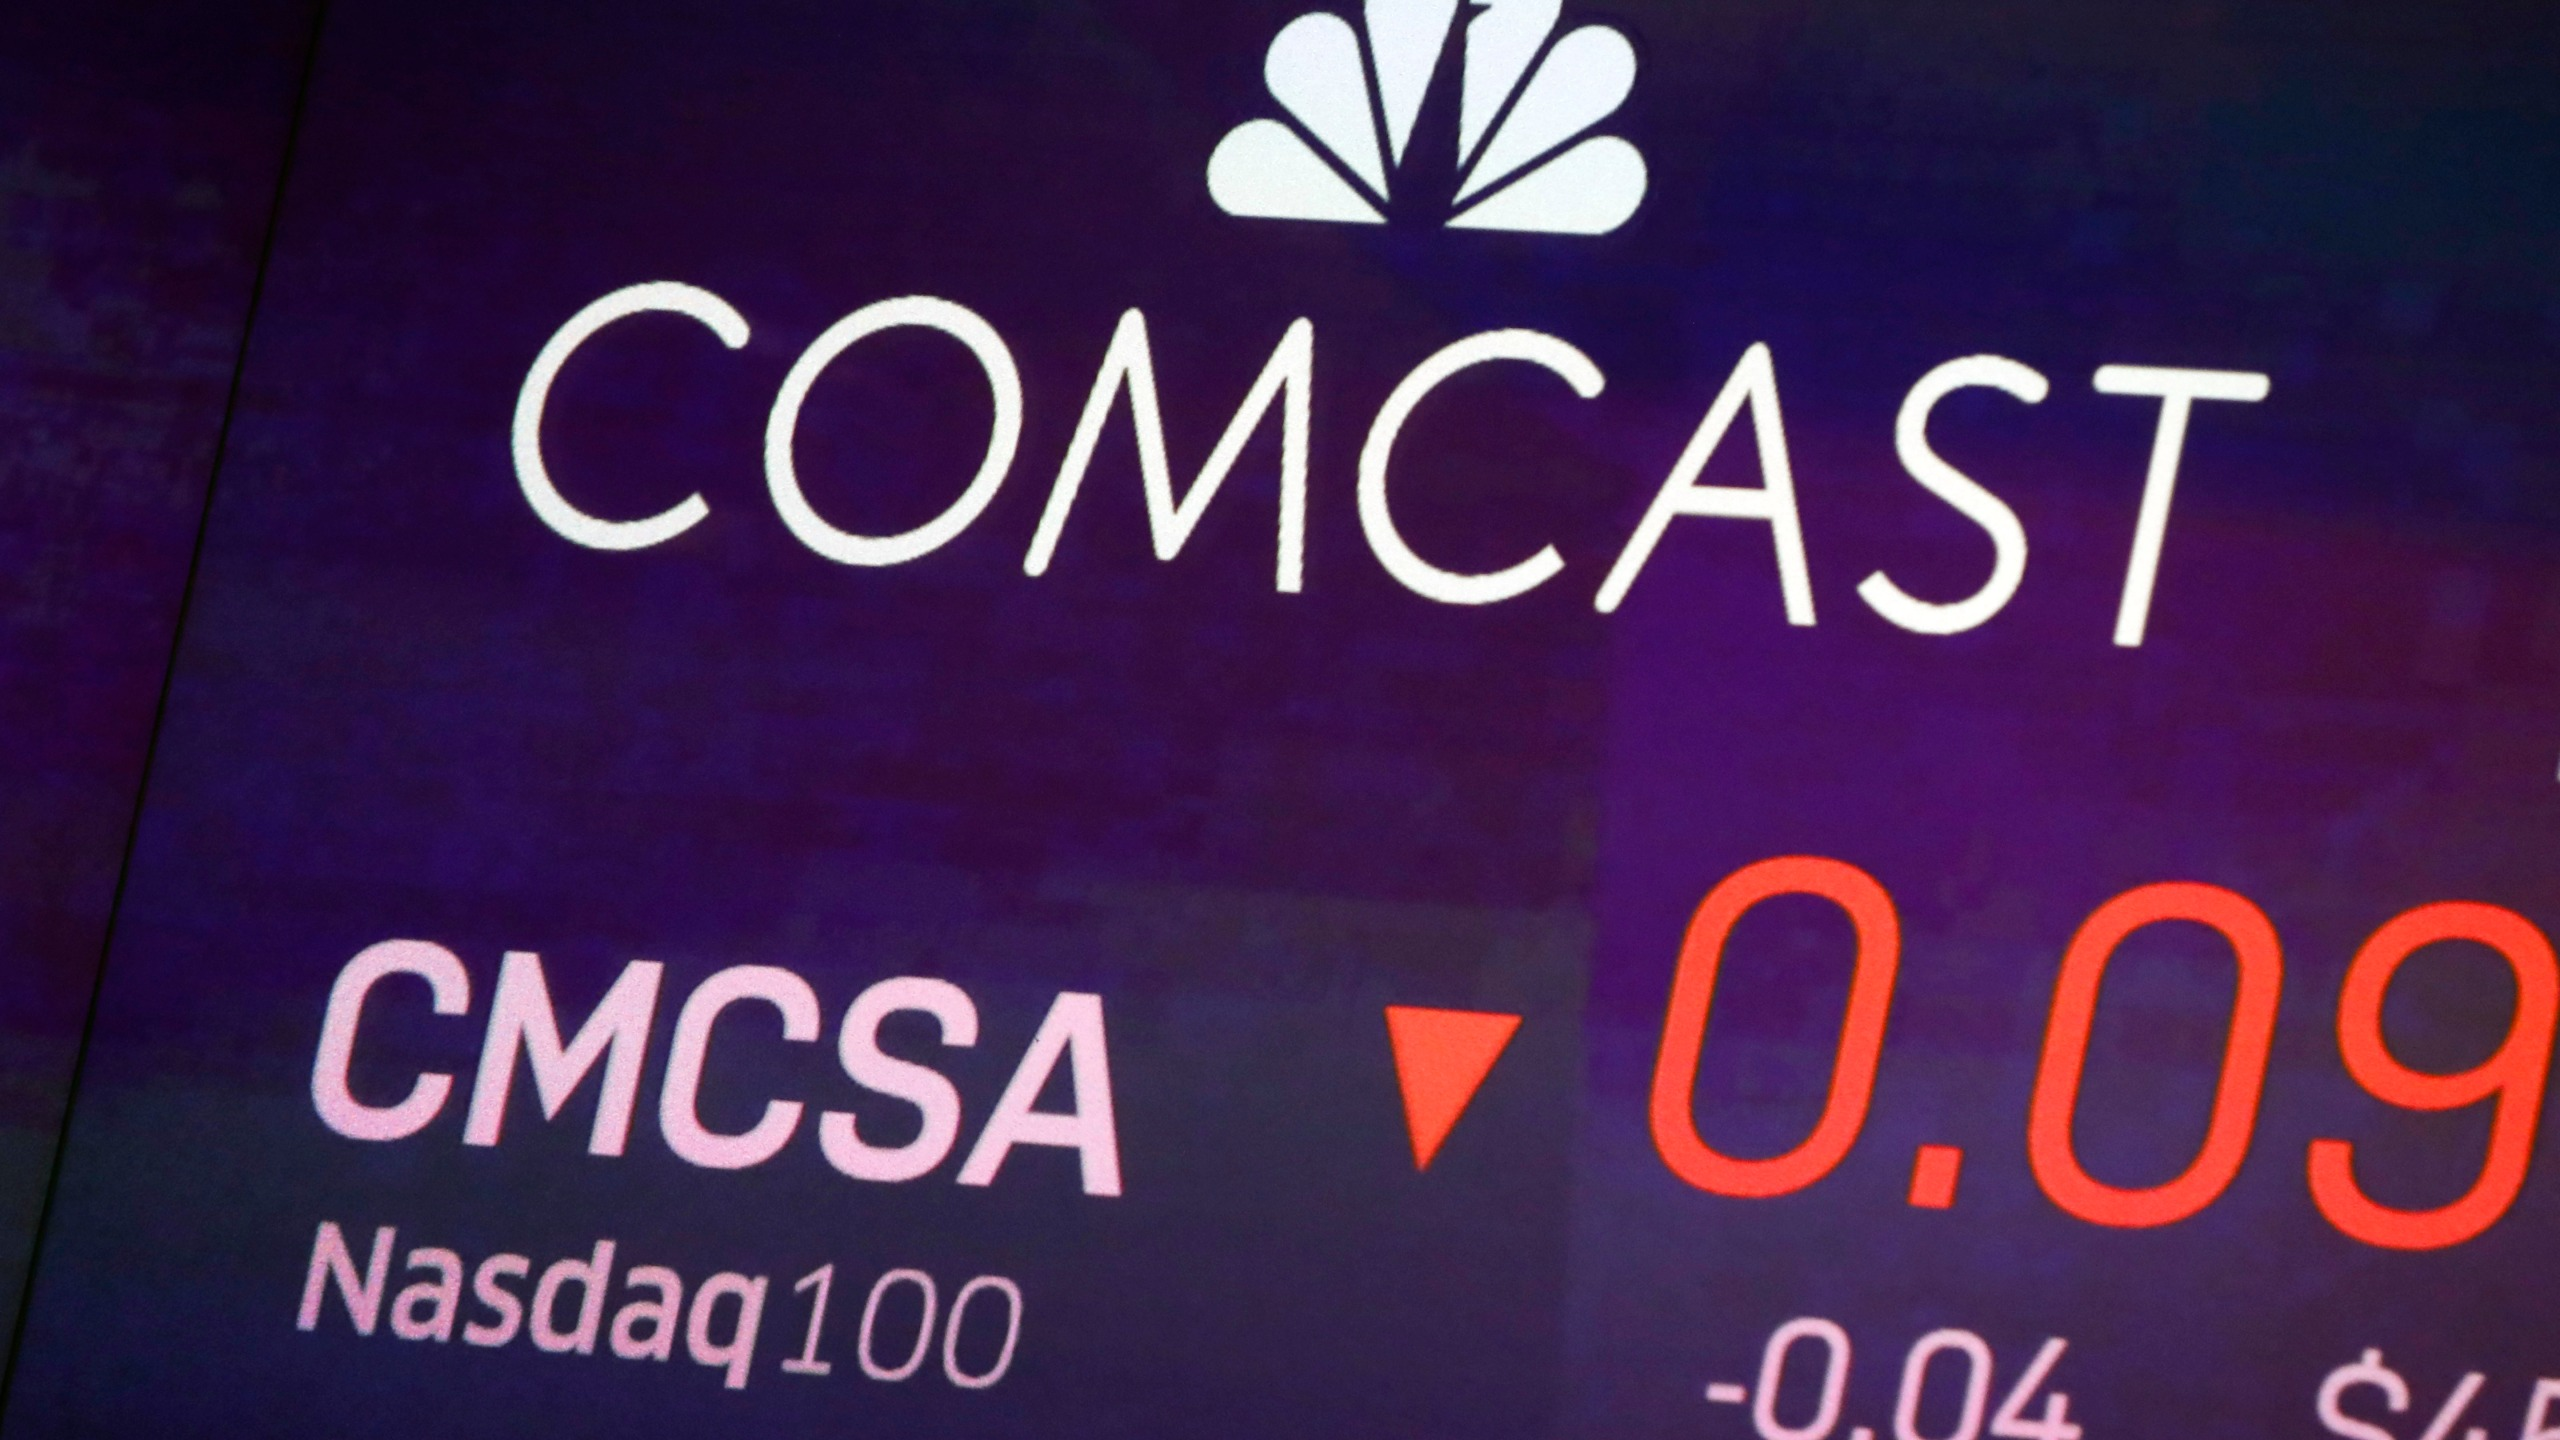 Pandemic Hits Comcast 2q Peacock Service Has 10m Sign Ups 8news